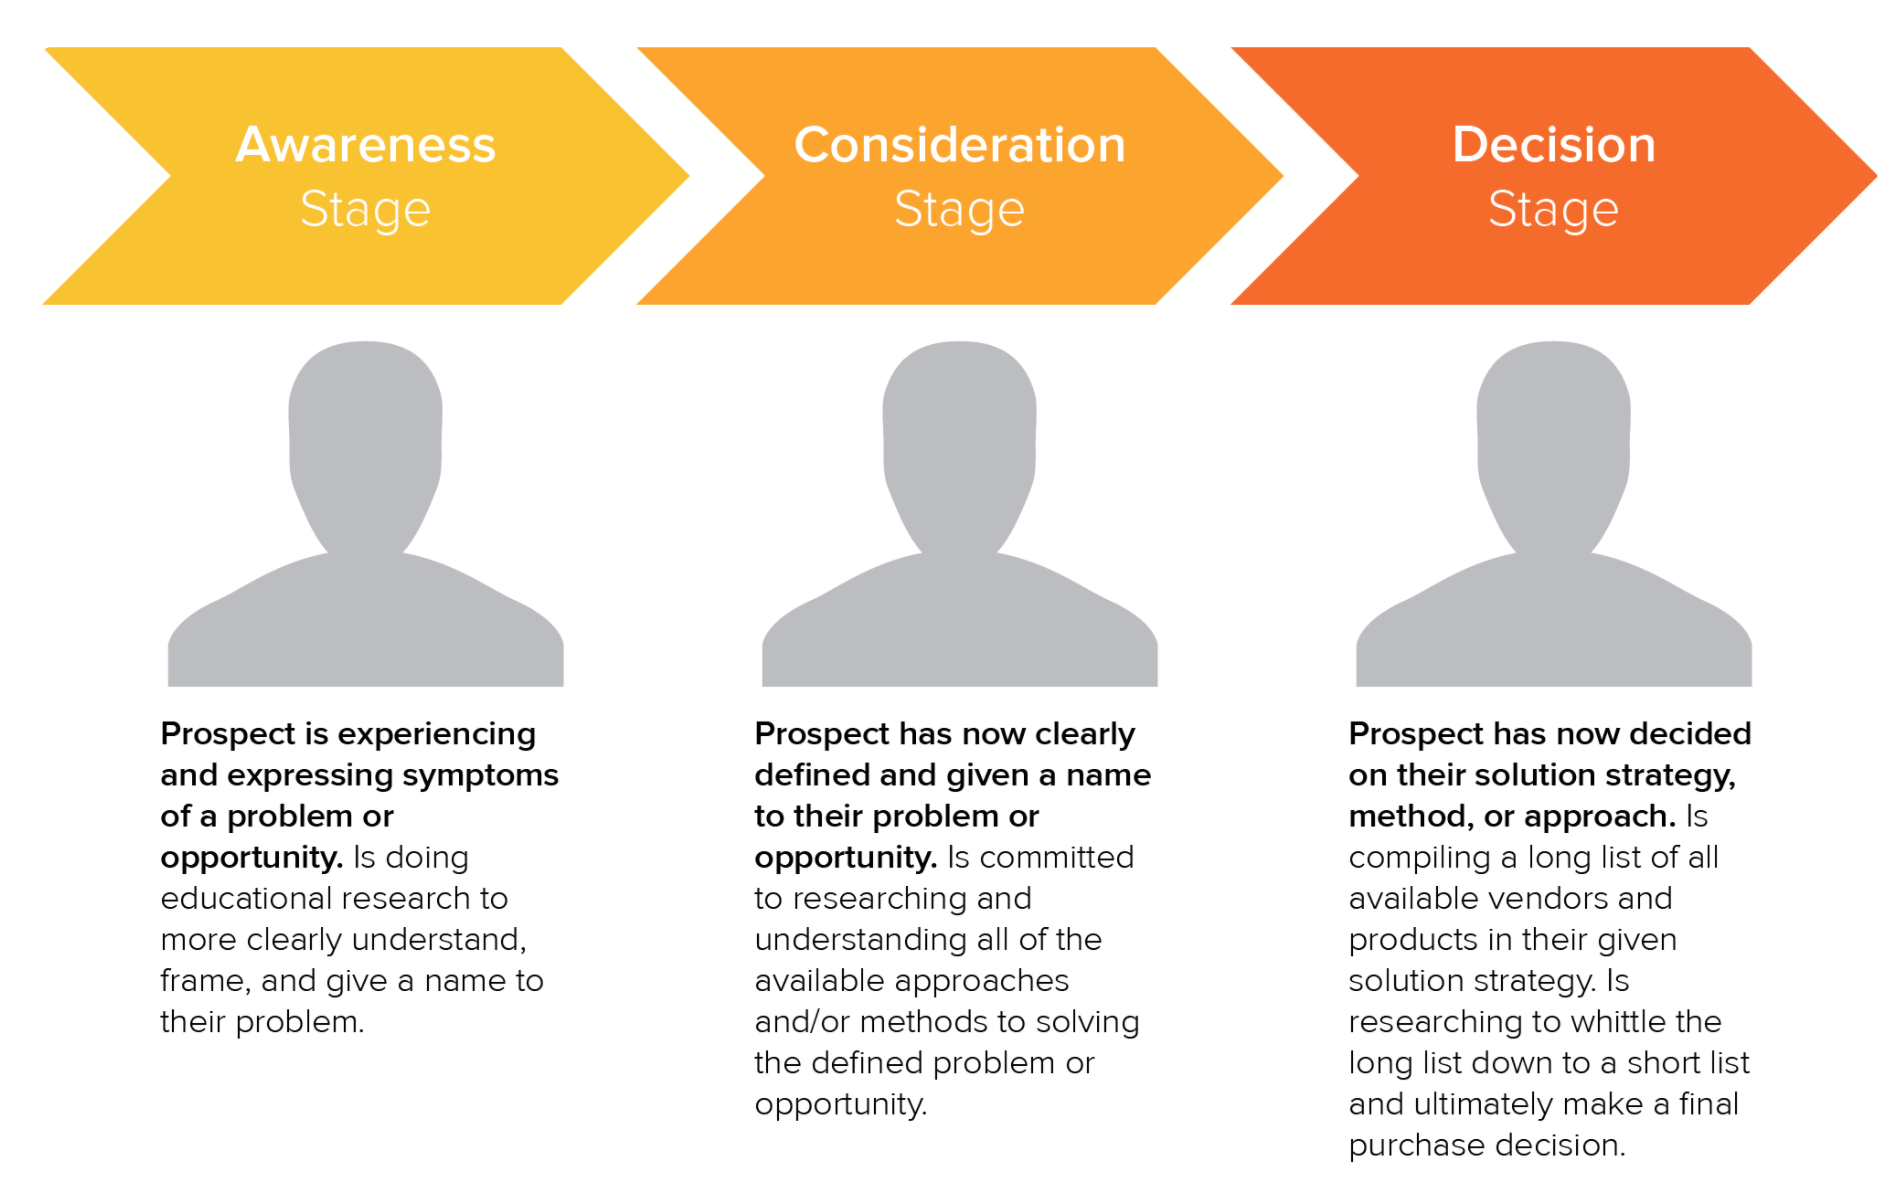 The key stages of the typical Buyer's Journey